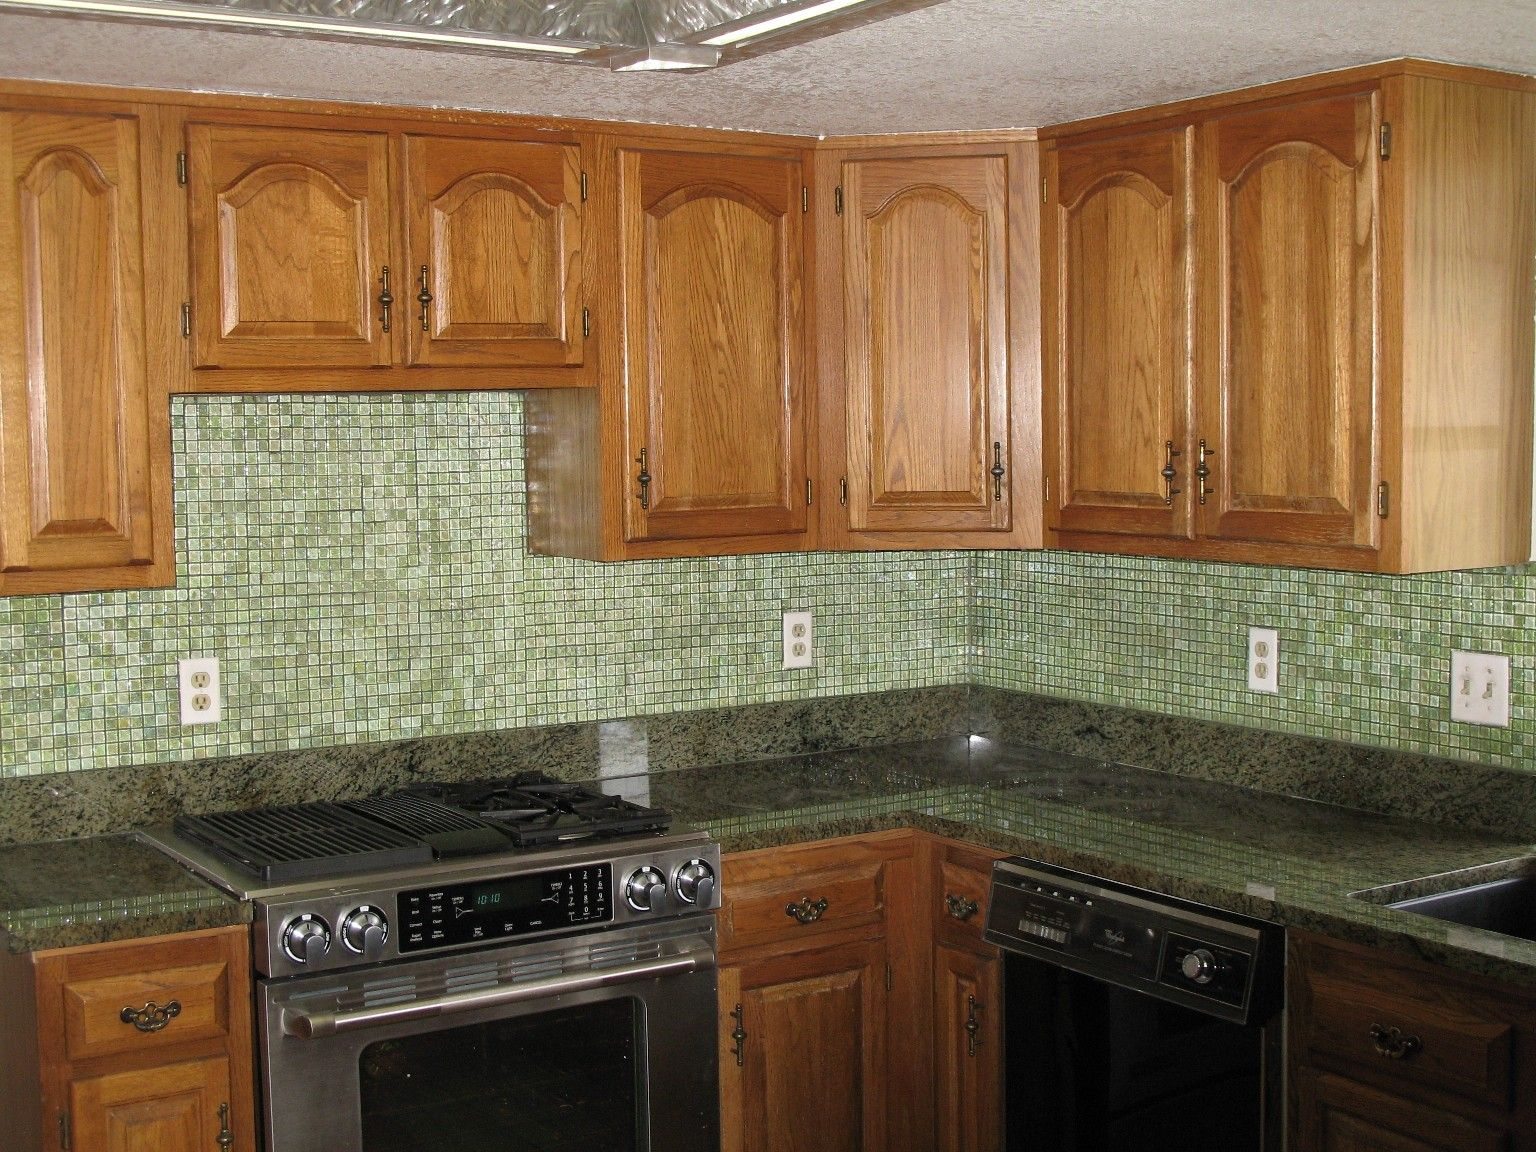 Kitchen Backsplash Tile Ideas Unique Kitchen Tile Ideas Kitchen Backsplash Tile Designs